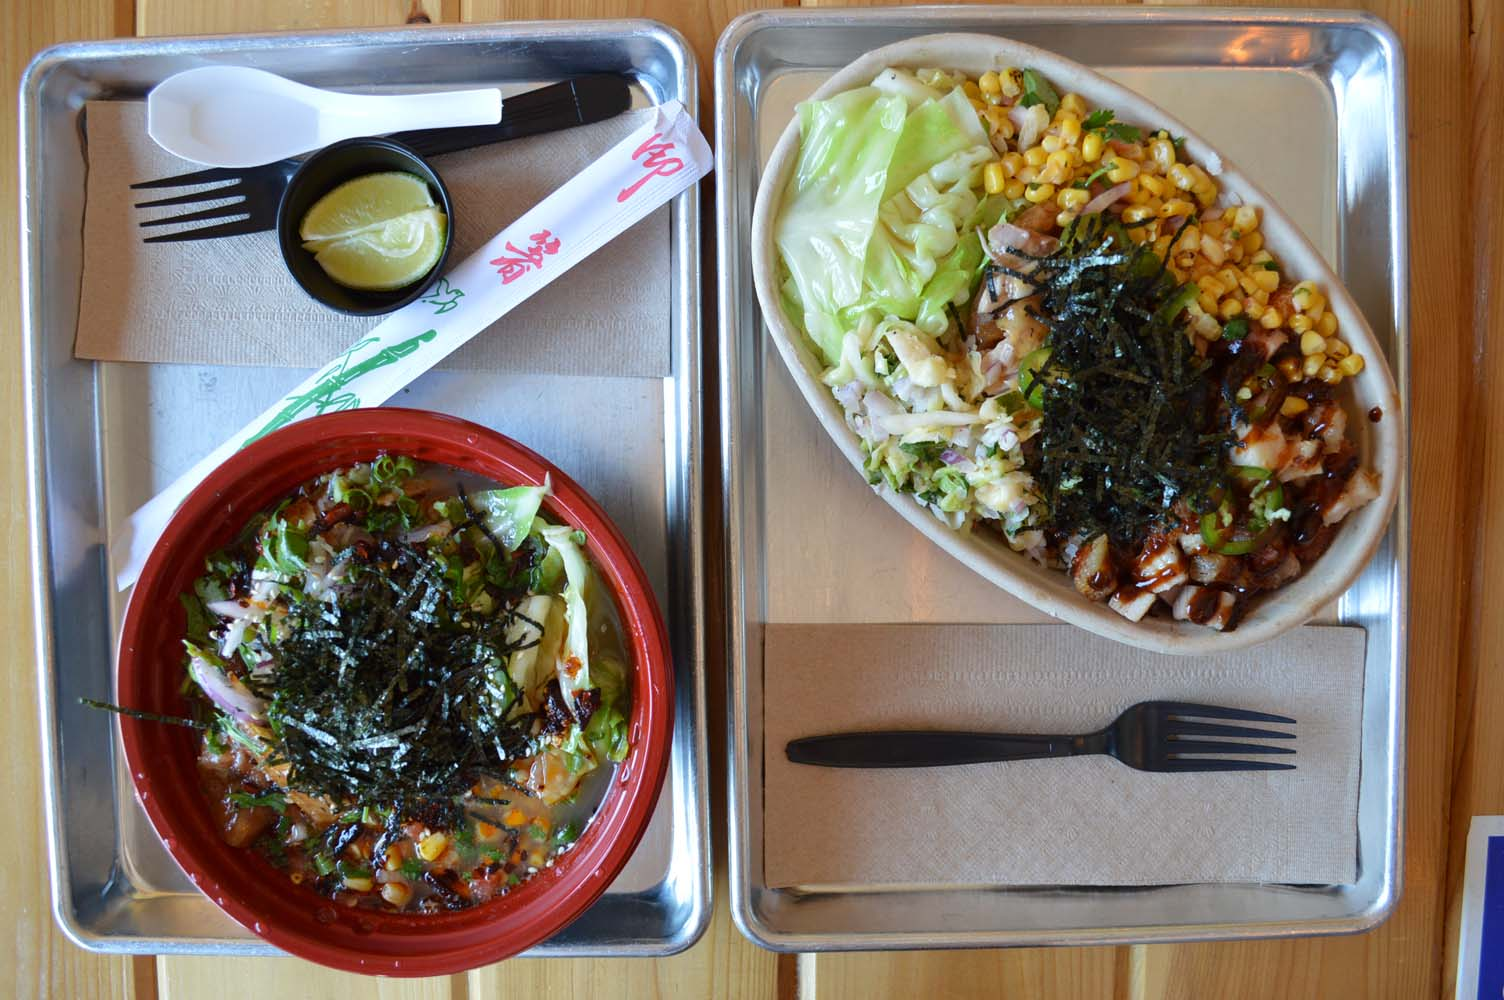 Check out Cross Roast Eatery, the Asian-Chipotle of Roasted Duck and More in Anaheim!